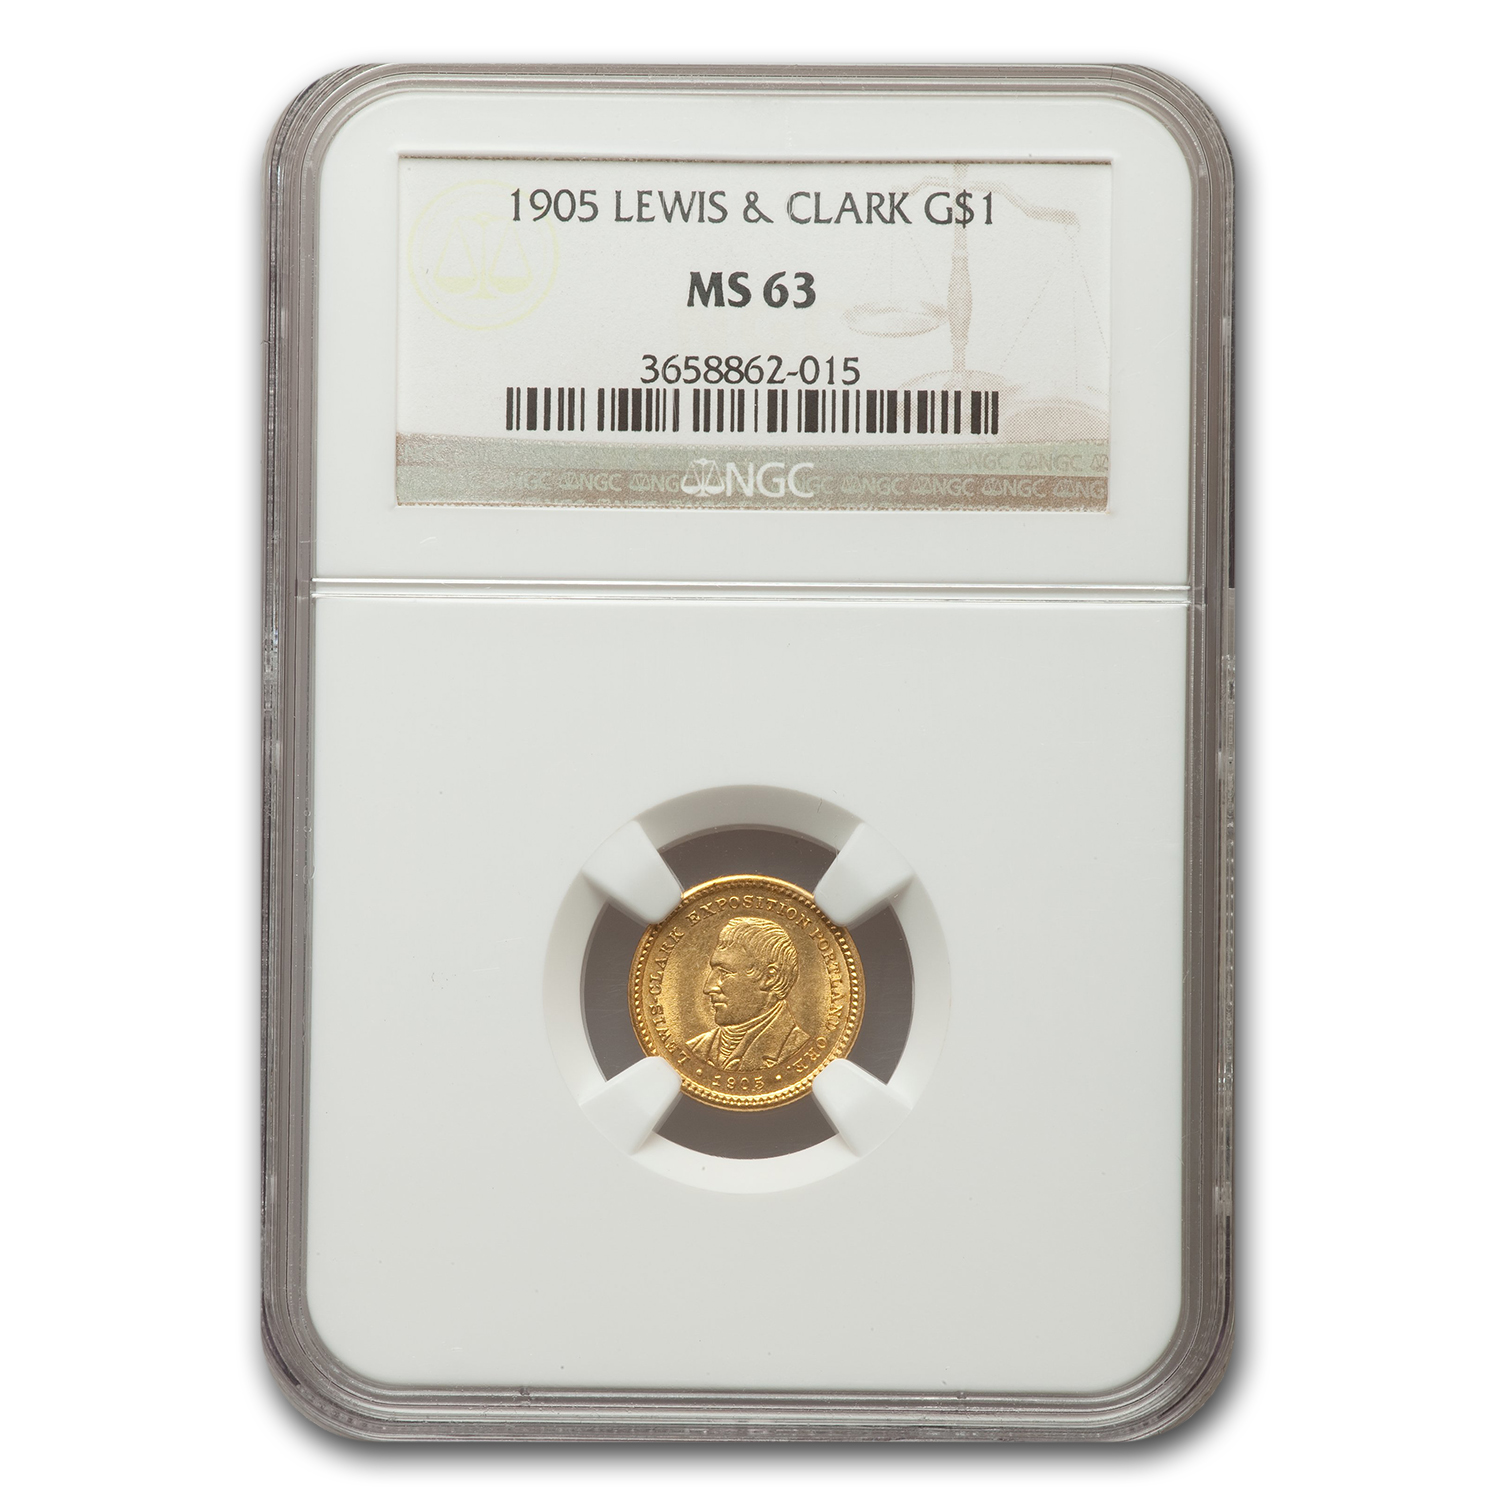 1905 Oregon Gold $1.00 Lewis and Clark Exposition MS-63 NGC